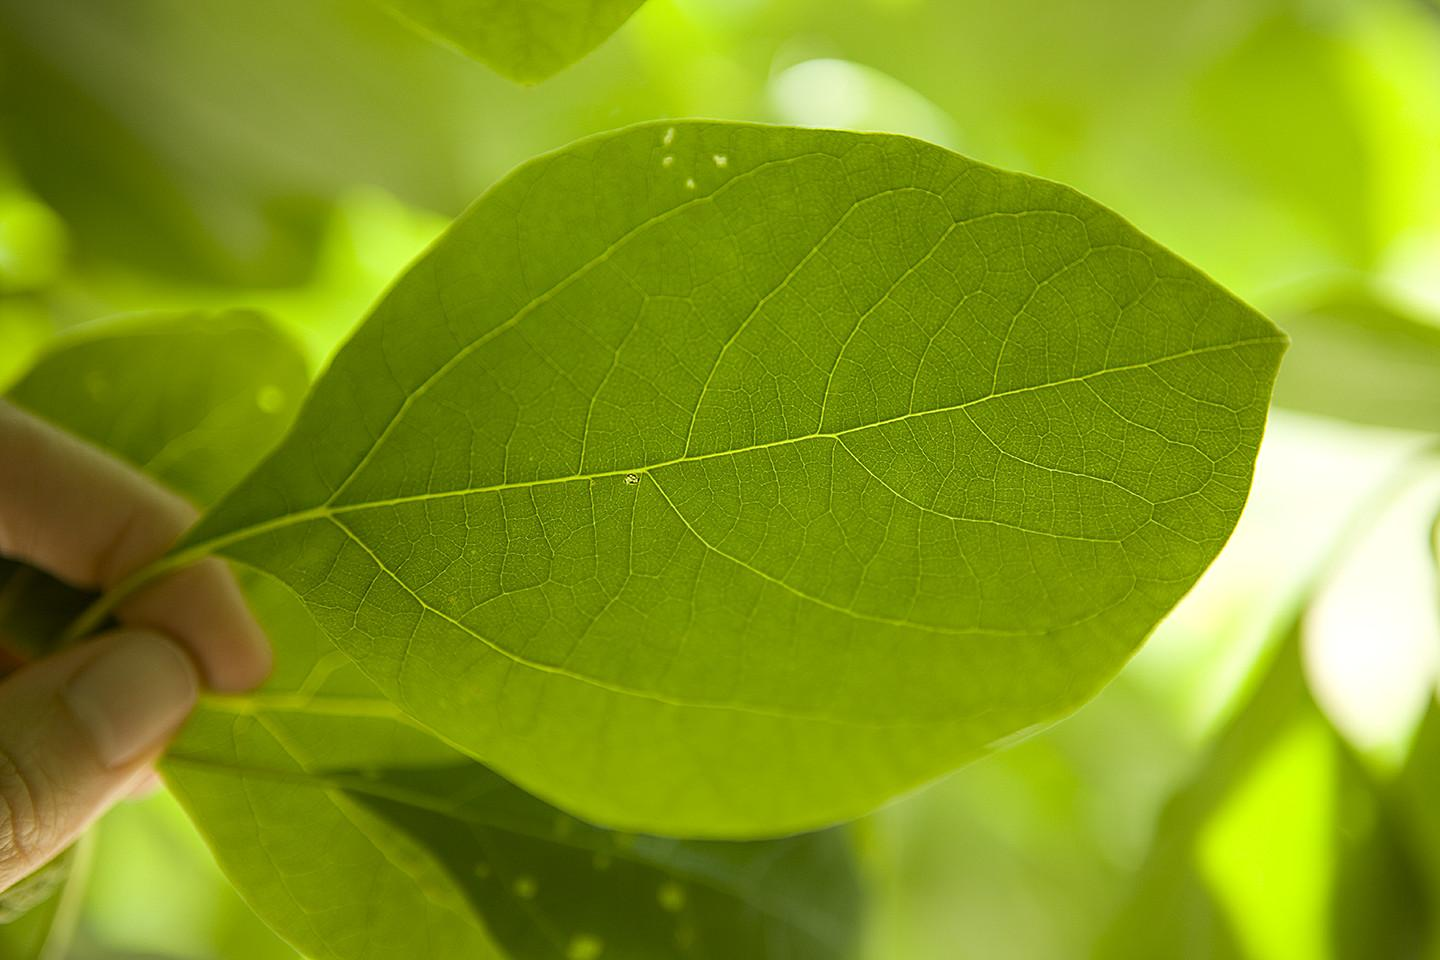 A light-skinned person holds a bright green leaf between their first finger and thumb close to the camera so that all veins and details of the leaf are visible.